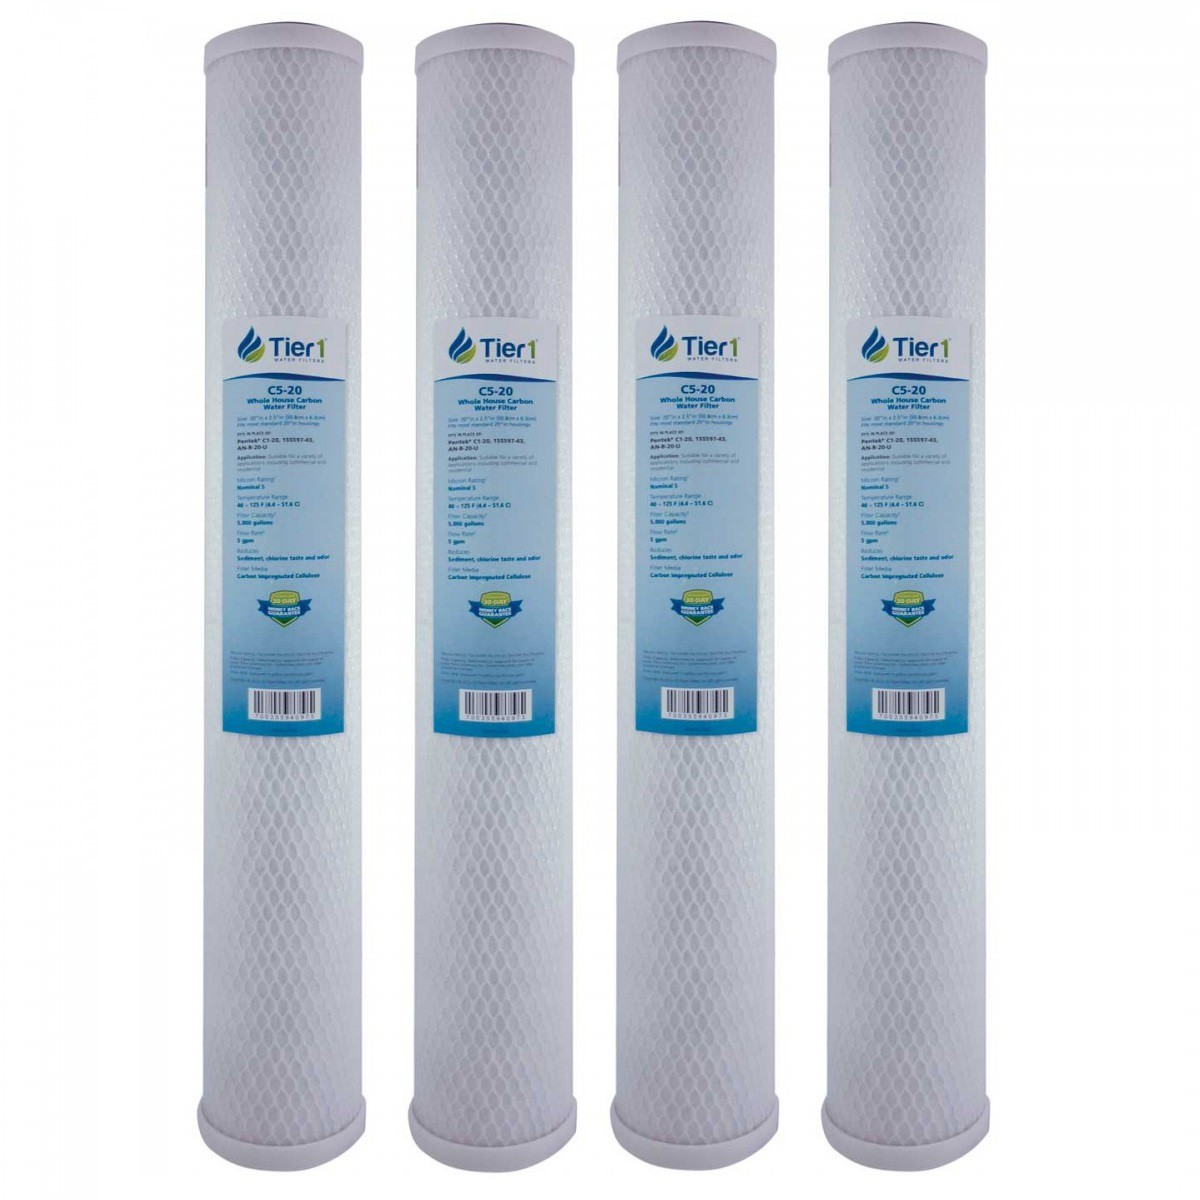 C1 20 Pentek Comparable Whole House Water Filter By Tier1